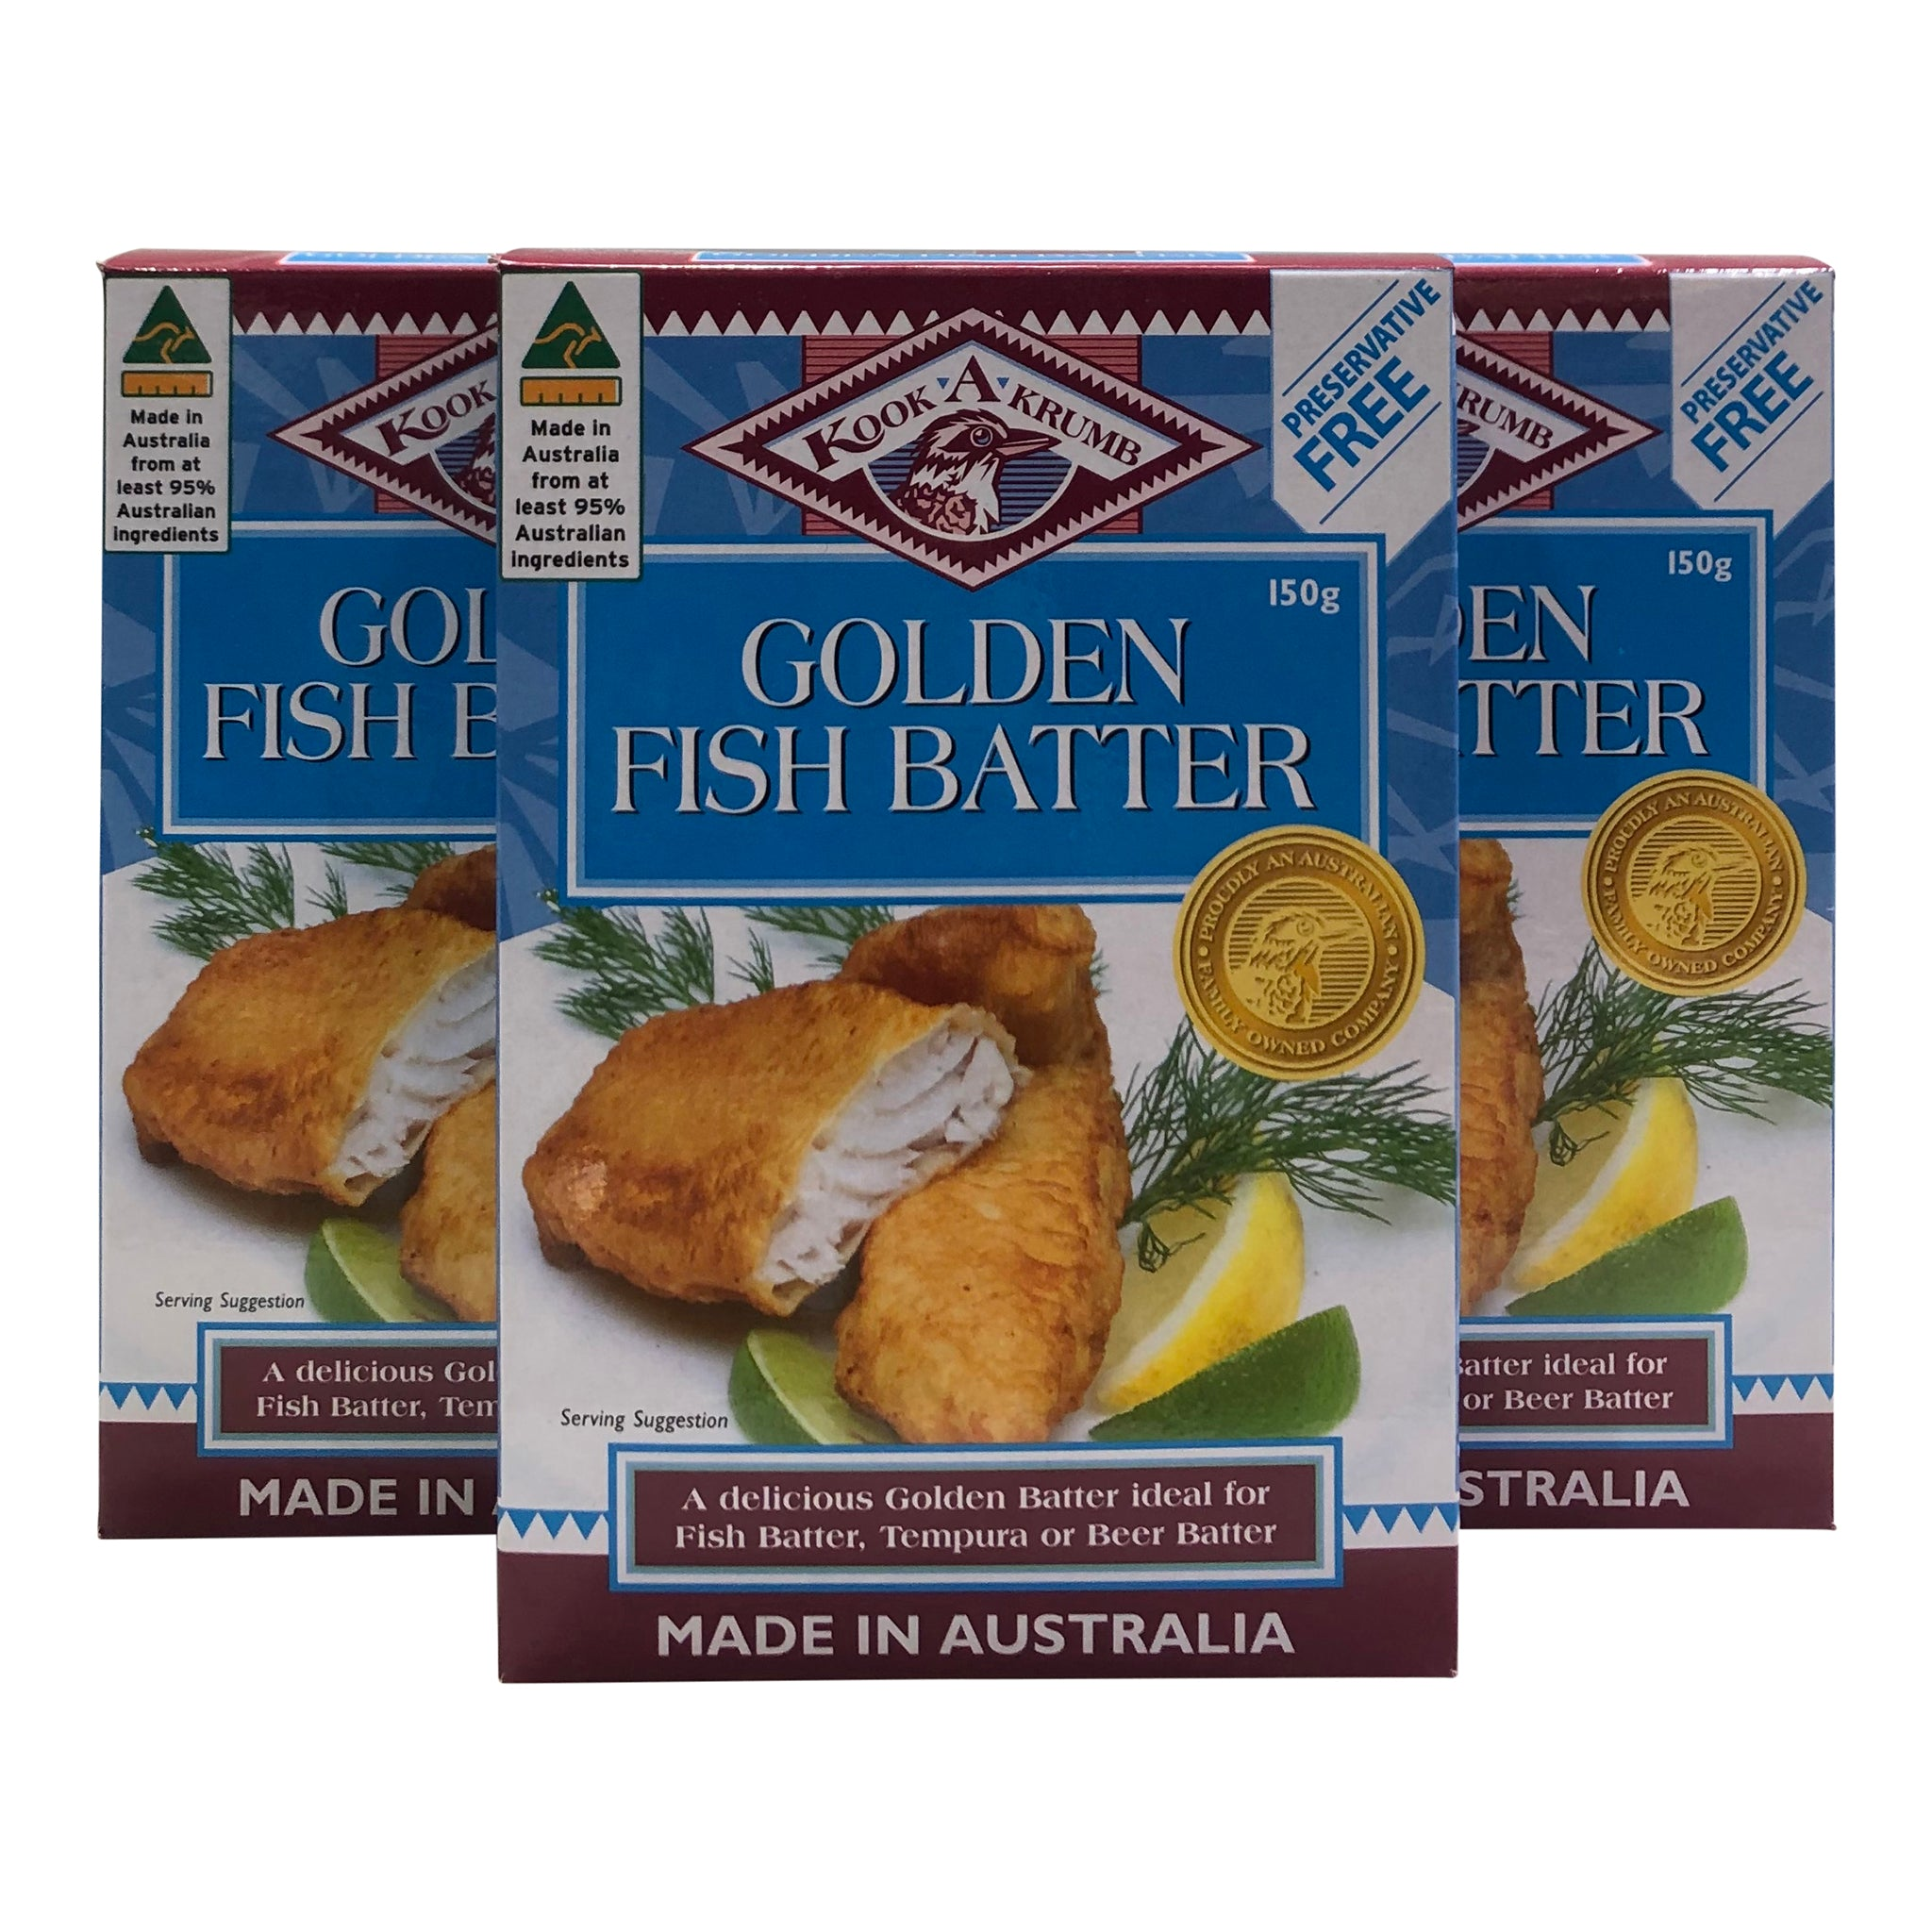 Golden Fish Batter